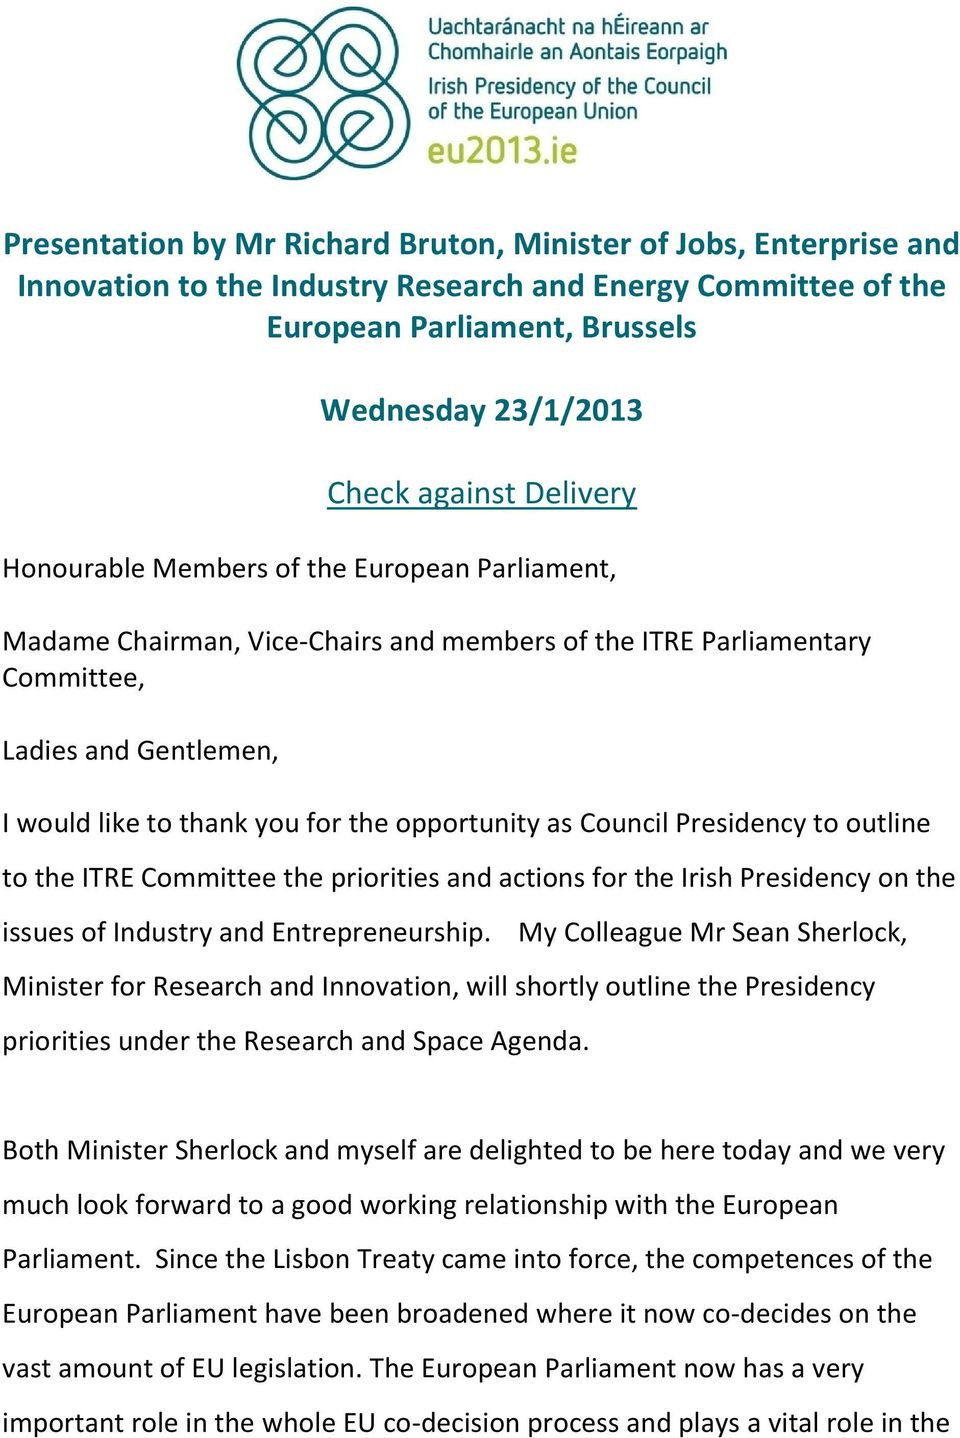 opportunity as Council Presidency to outline to the ITRE Committee the priorities and actions for the Irish Presidency on the issues of Industry and Entrepreneurship.